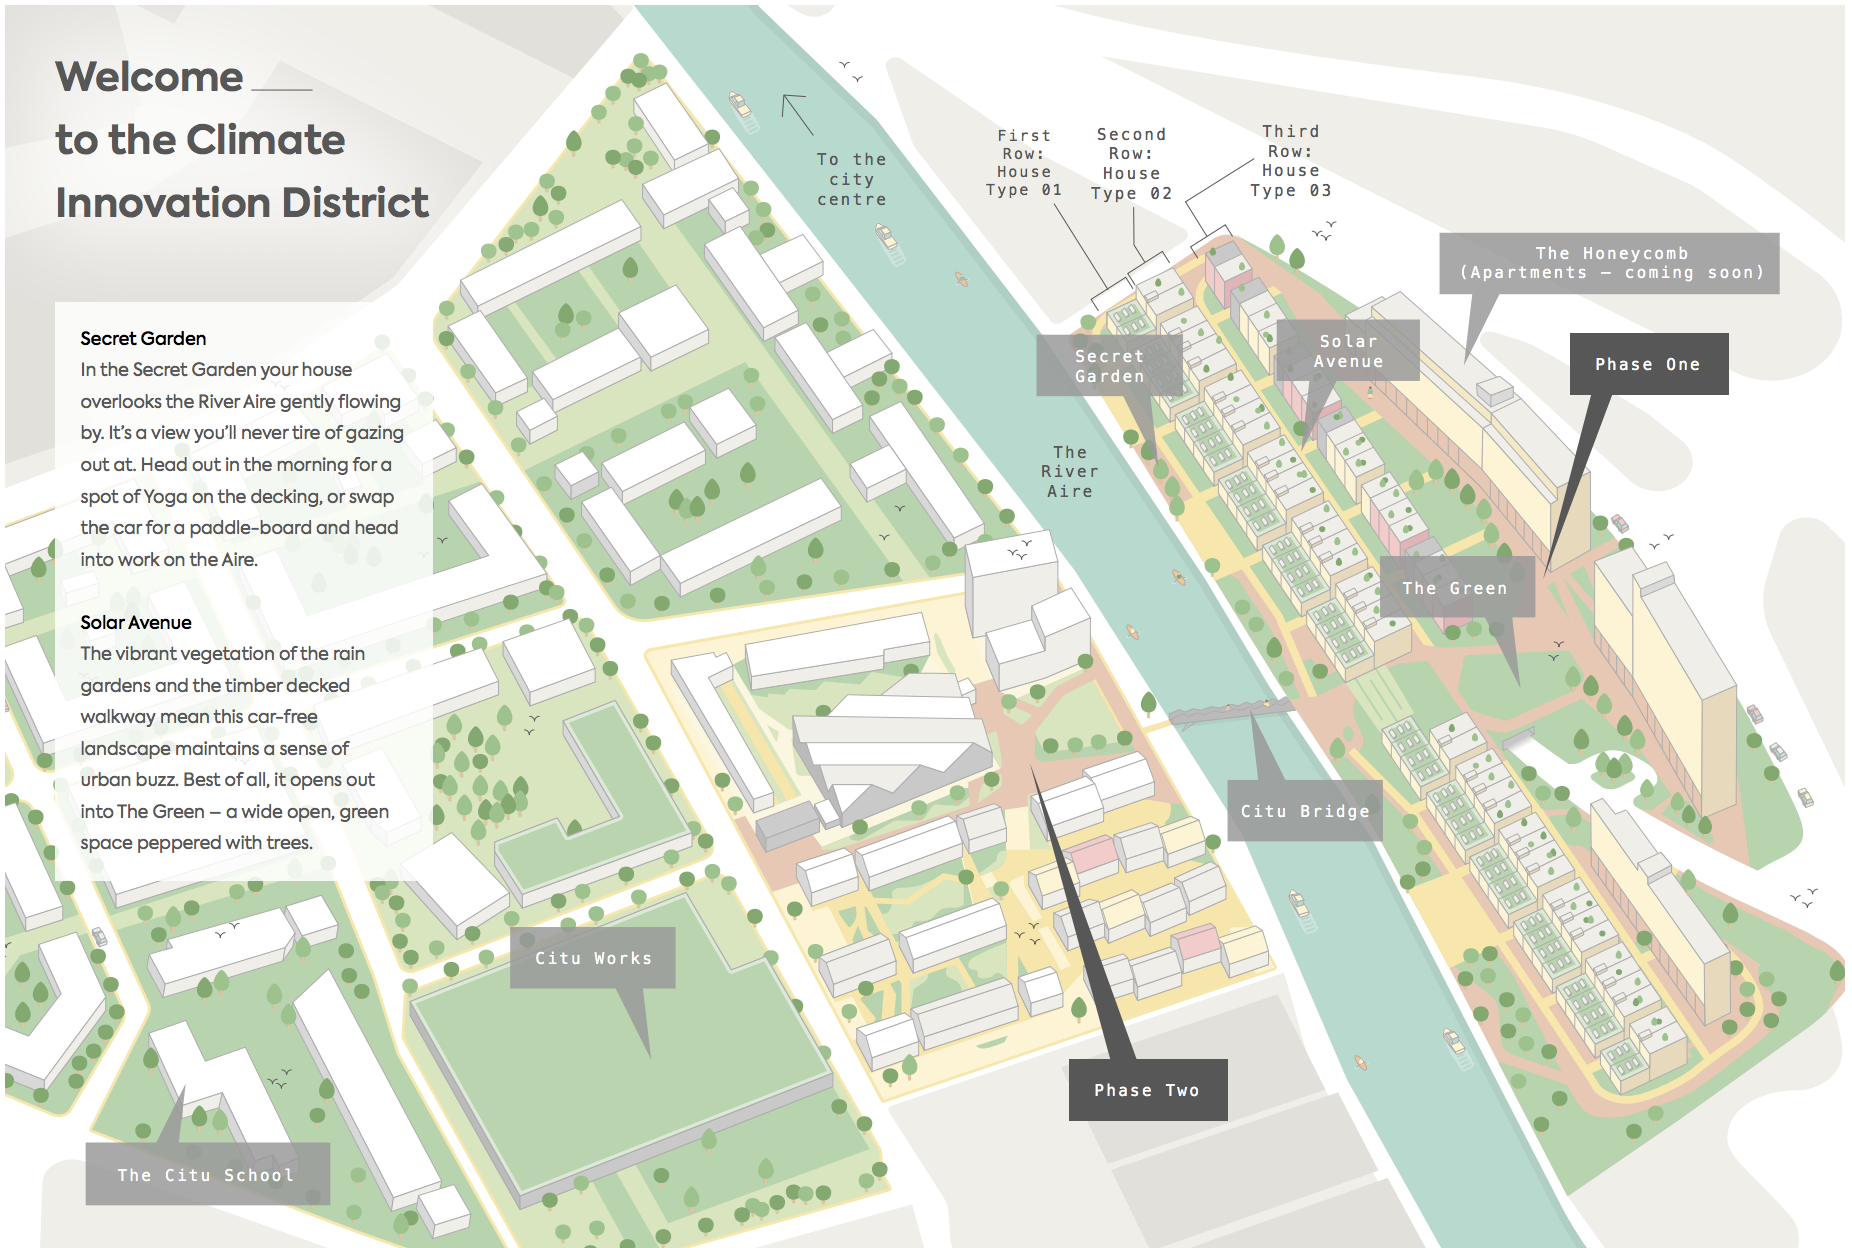 Site map of the Climate Innovation District from the Citu sales brochure